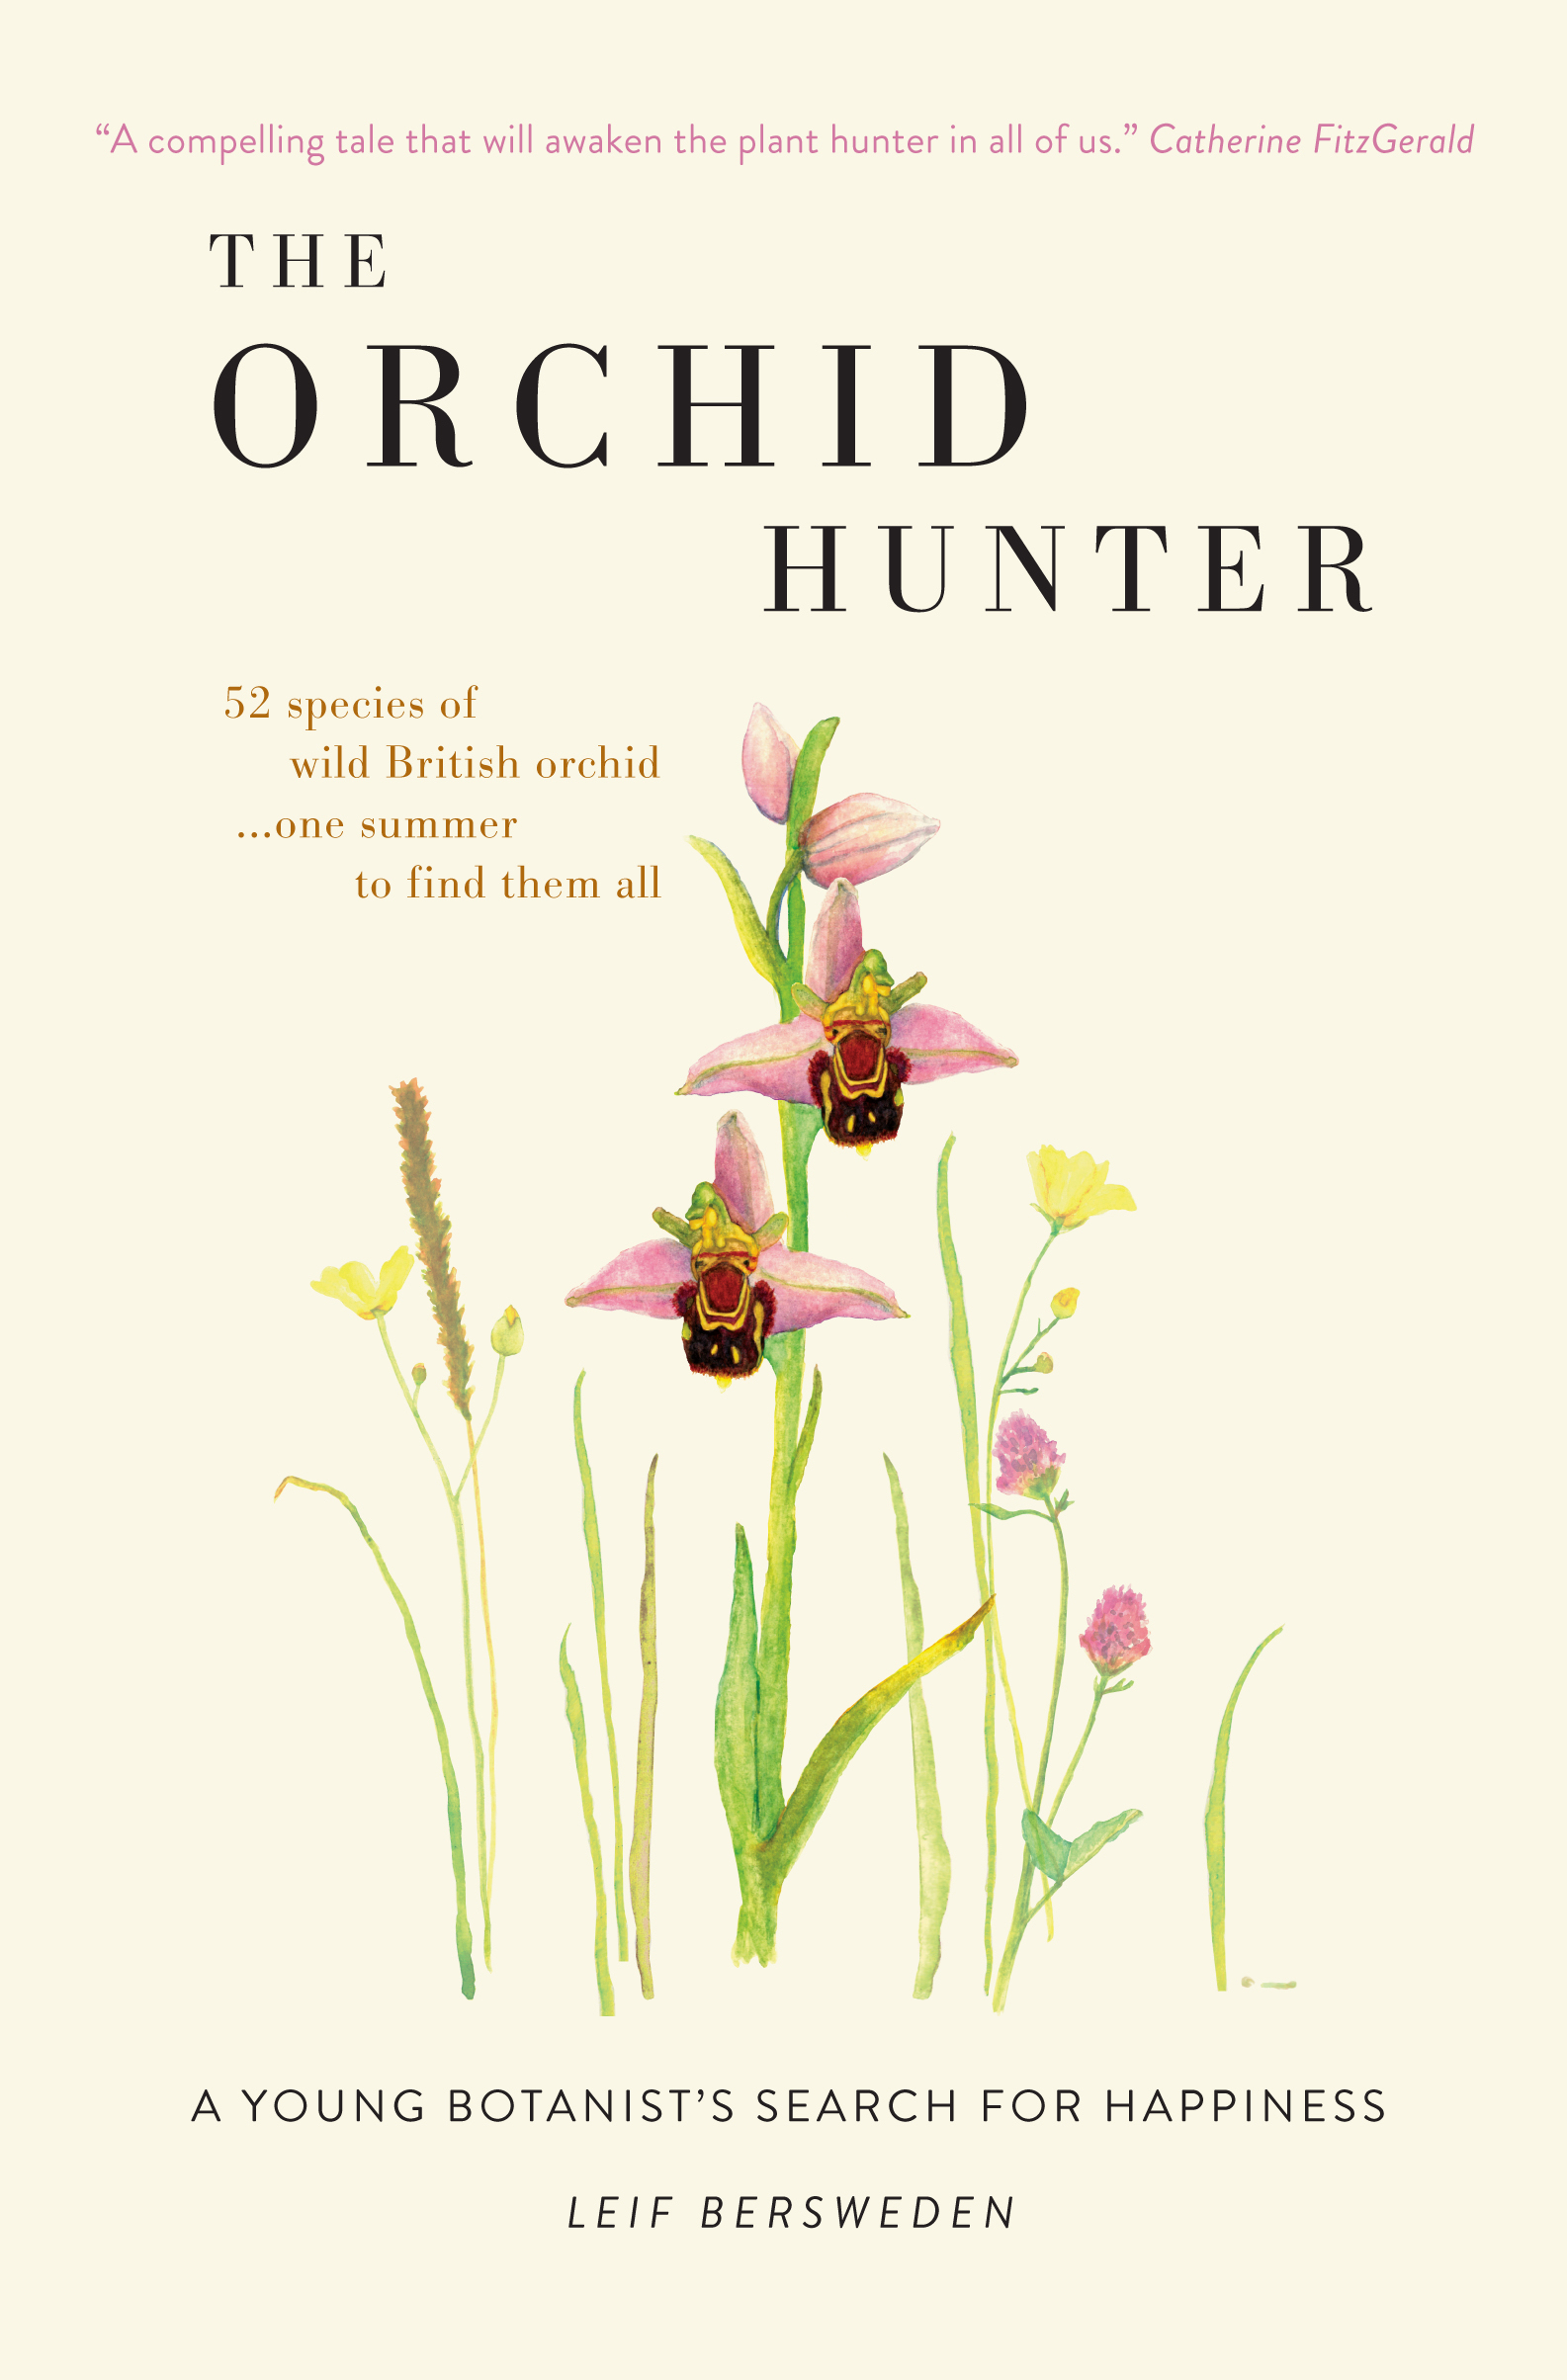 The first flower that Leif found, the Bee Orchid, was to inspire a lifelong passion